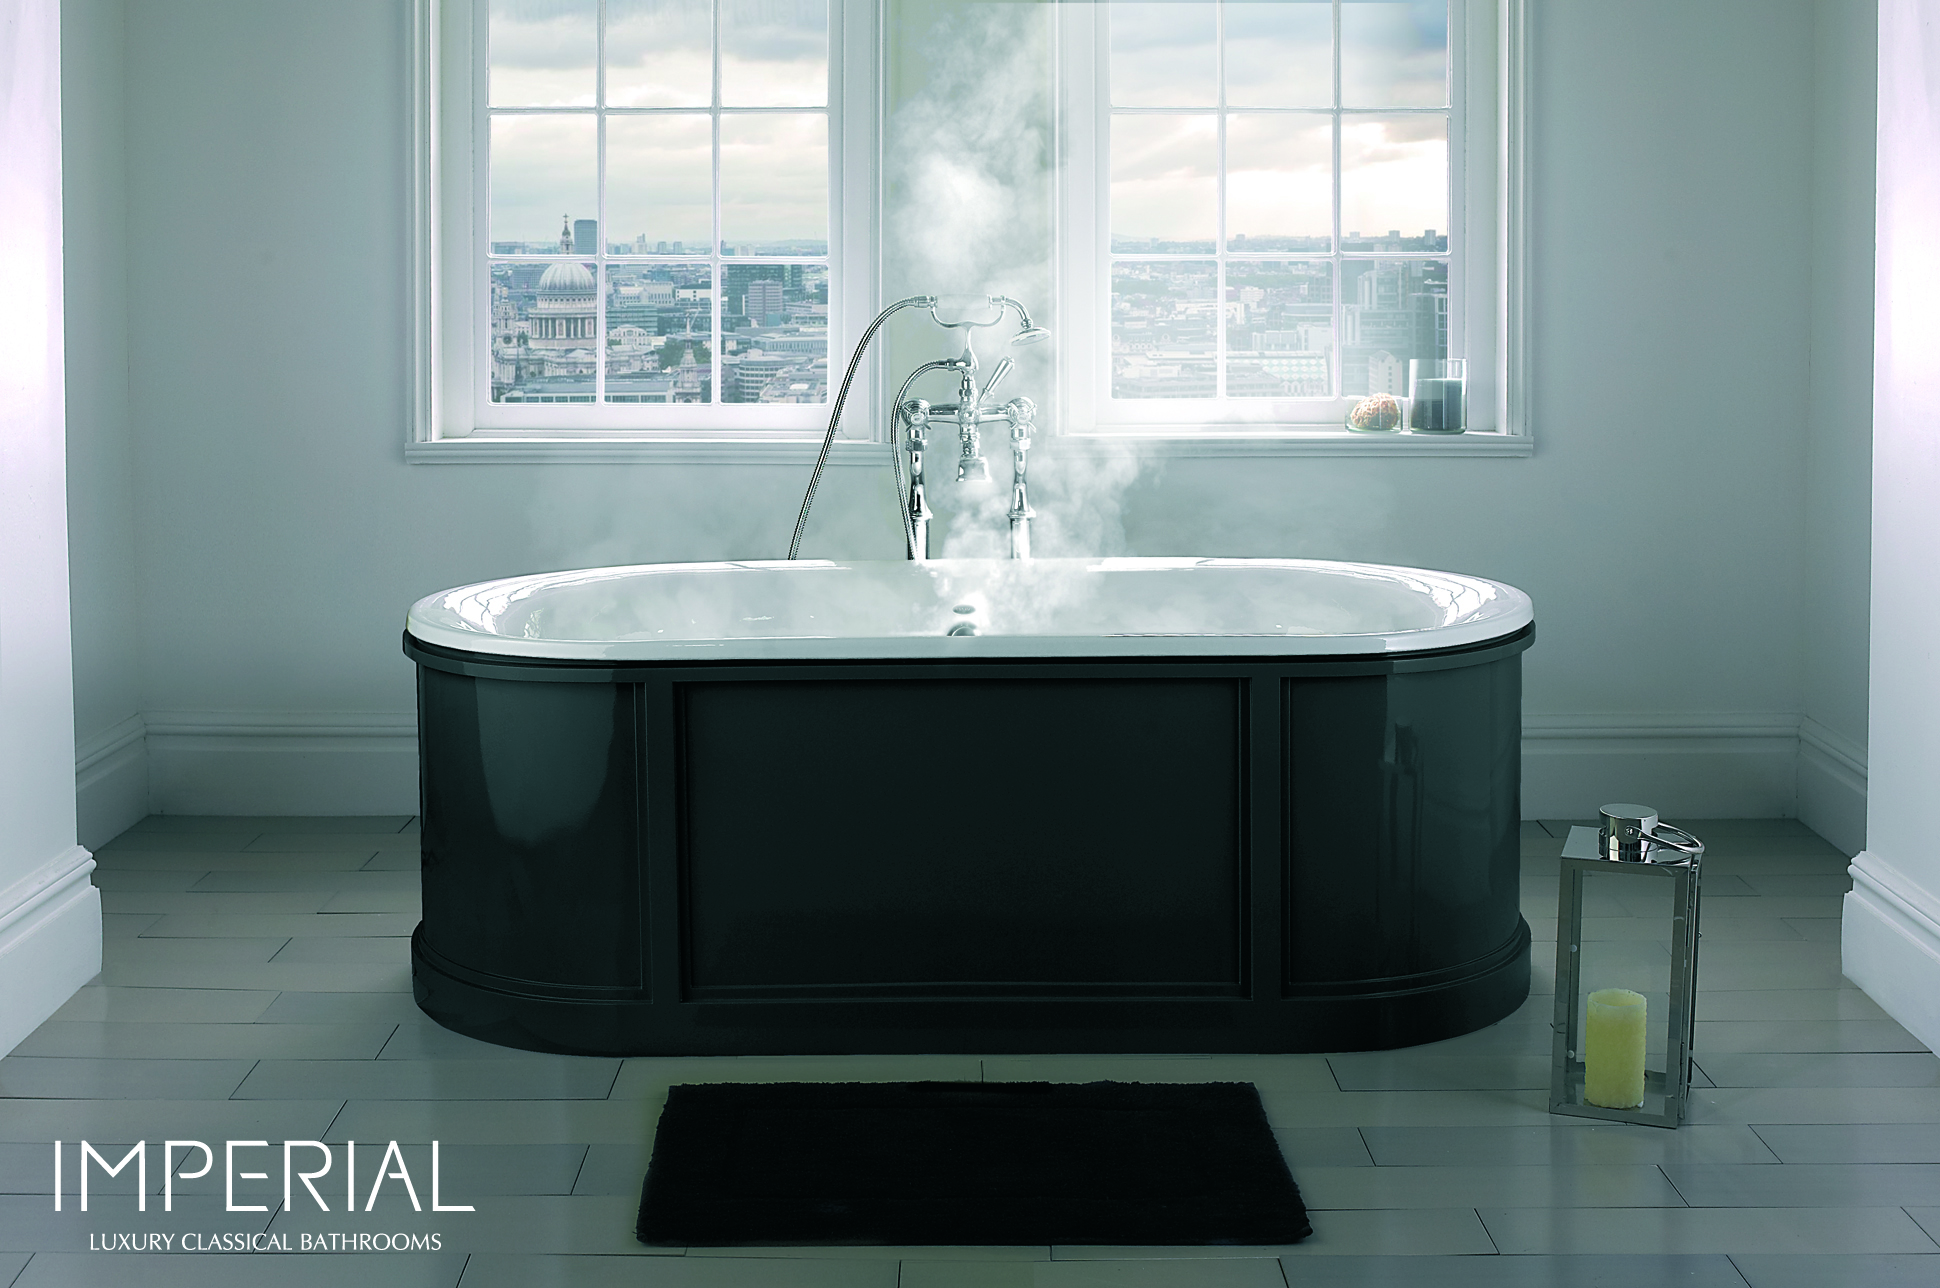 imperial bathrooms badexclusief luxe klassiek sanitair